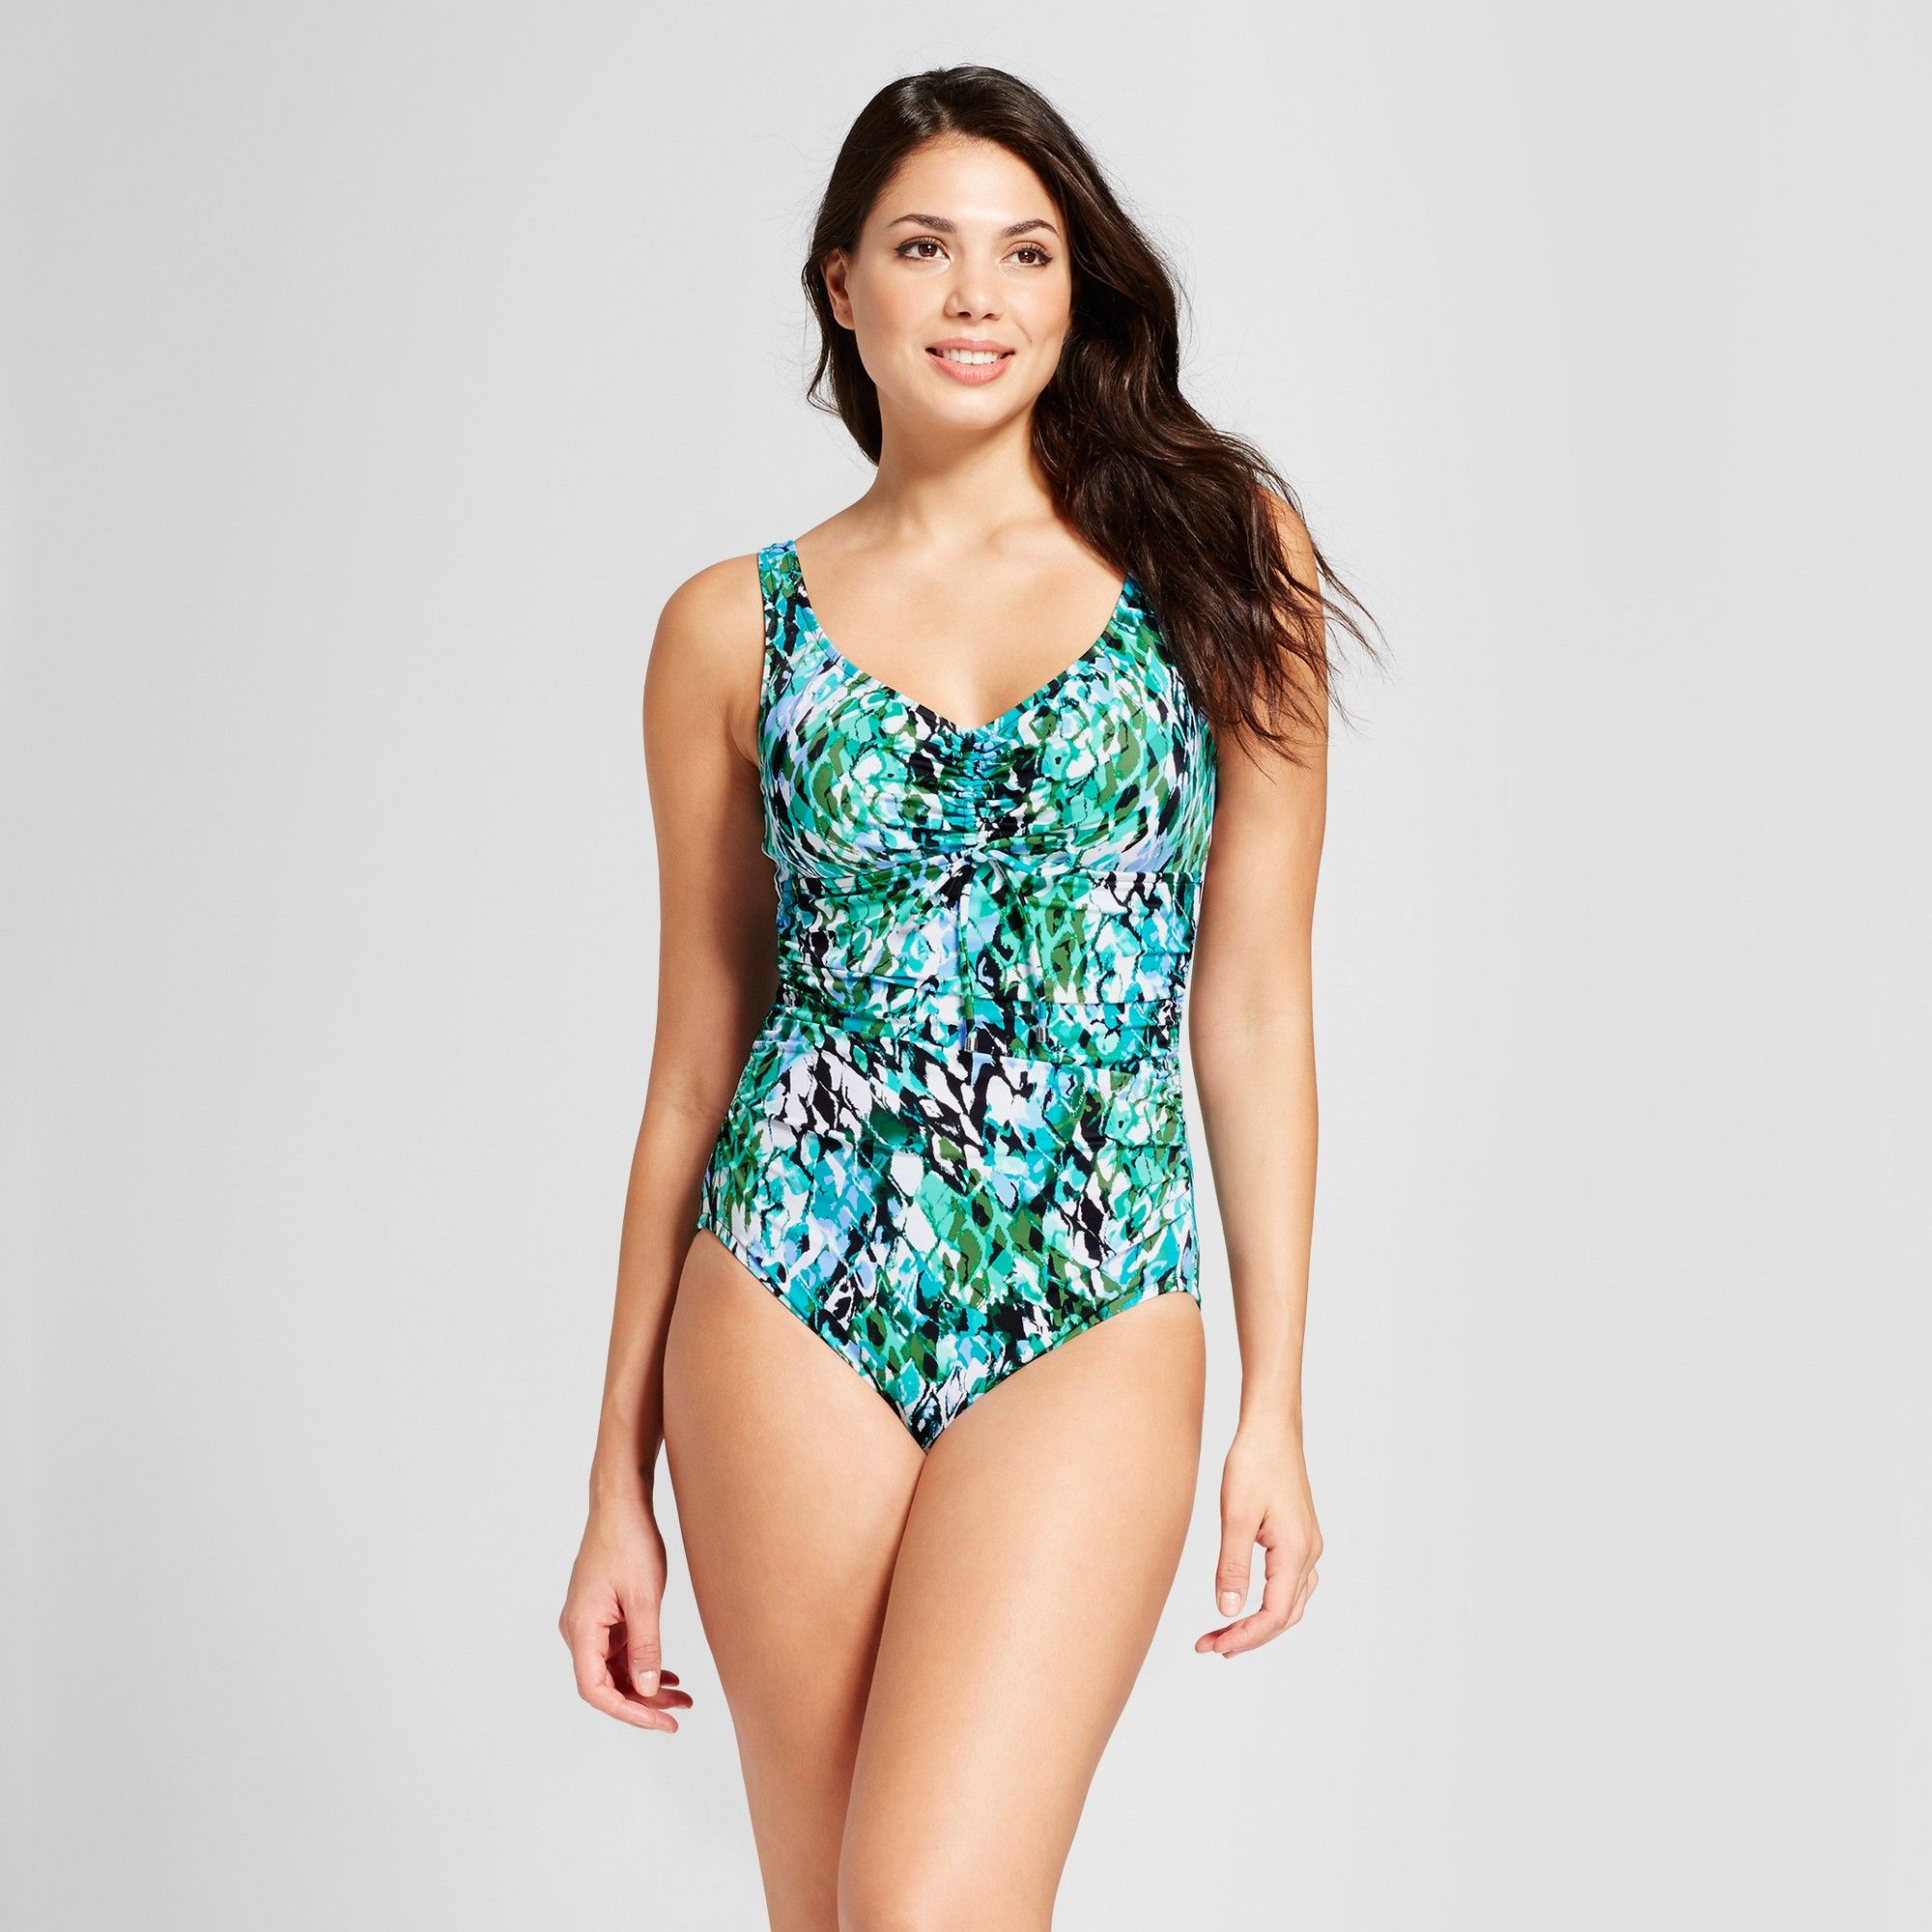 35e3656507 Women's Tie Front One Piece - Aqua Green Blue Multi M | Products ...